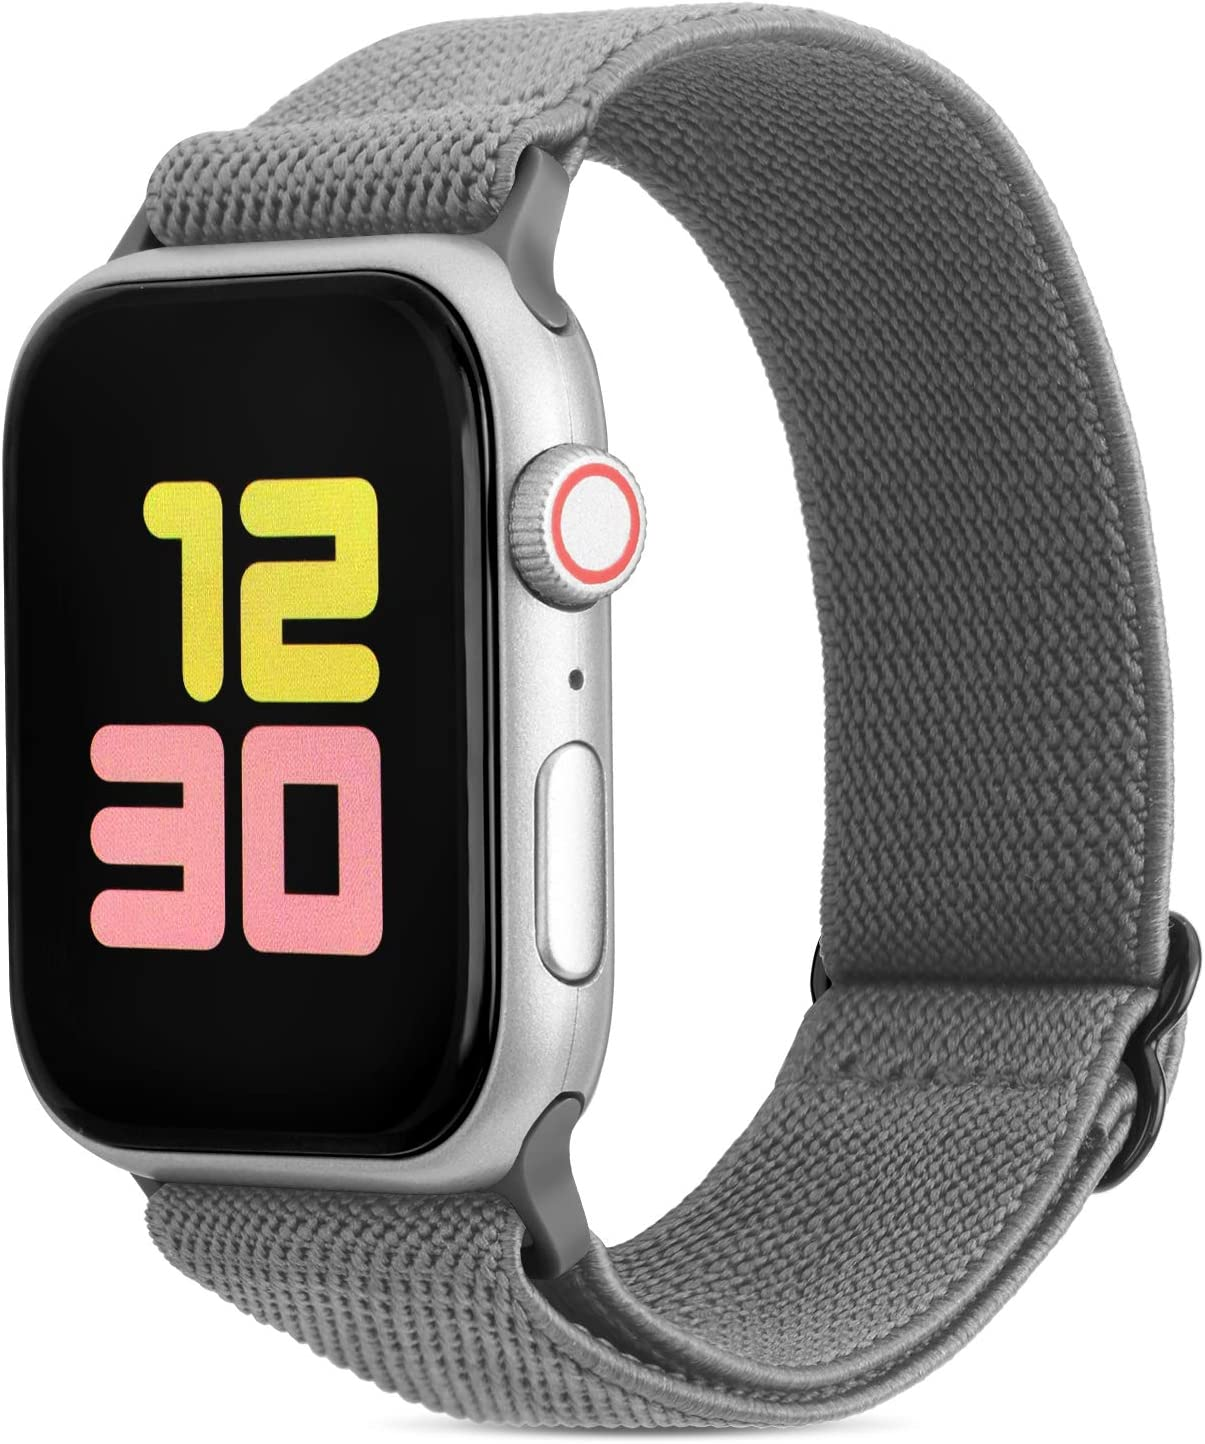 FITWORTH Adjustable Stretchy Nylon Watch Band Compatible with Apple Watch 38mm 40mm, iWatch Series 6 SE 5 4 3, Ultra Soft, Light & Breathable, Suit for Men's Women's Sports & Workout (38/40, Gray)